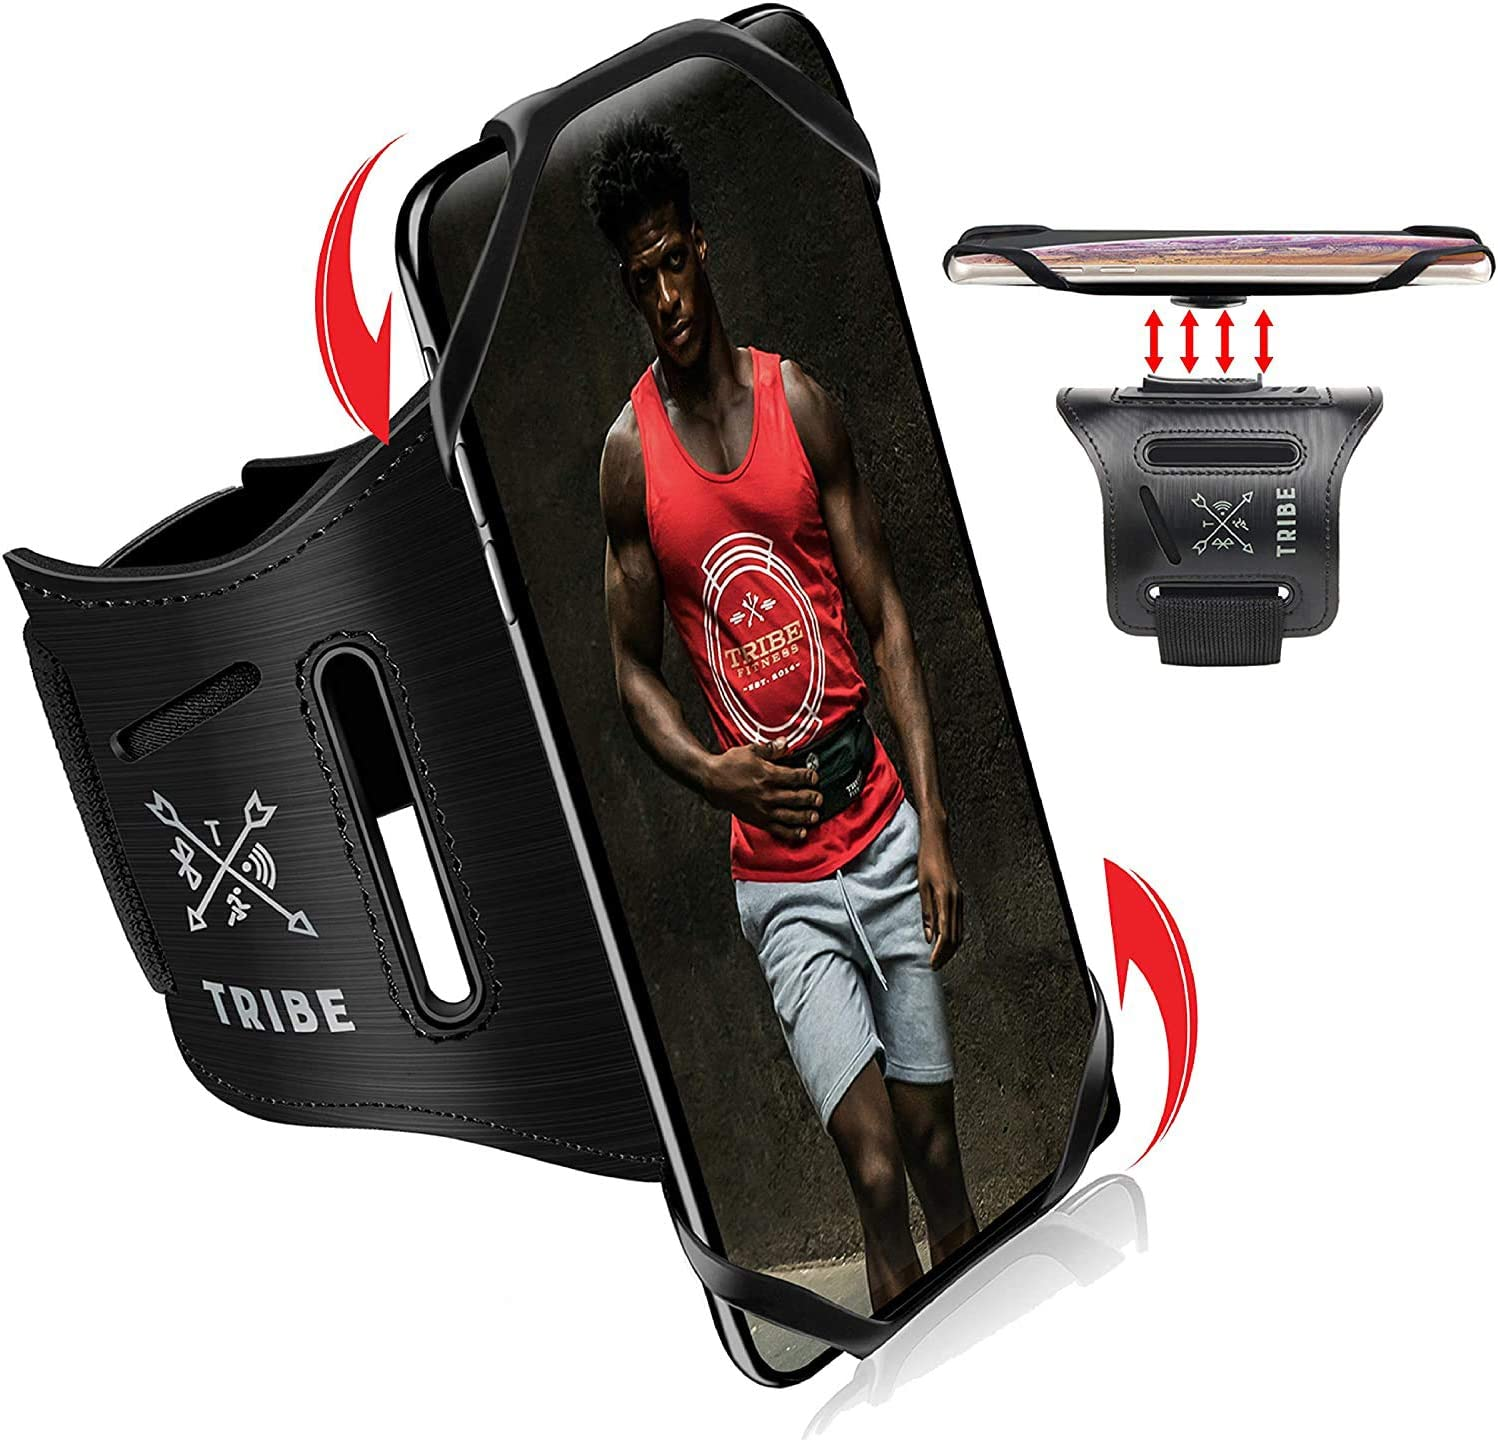 TRIBE Running Phone Holder famous Sports Armband. 5 popular iPhone Arm Cell